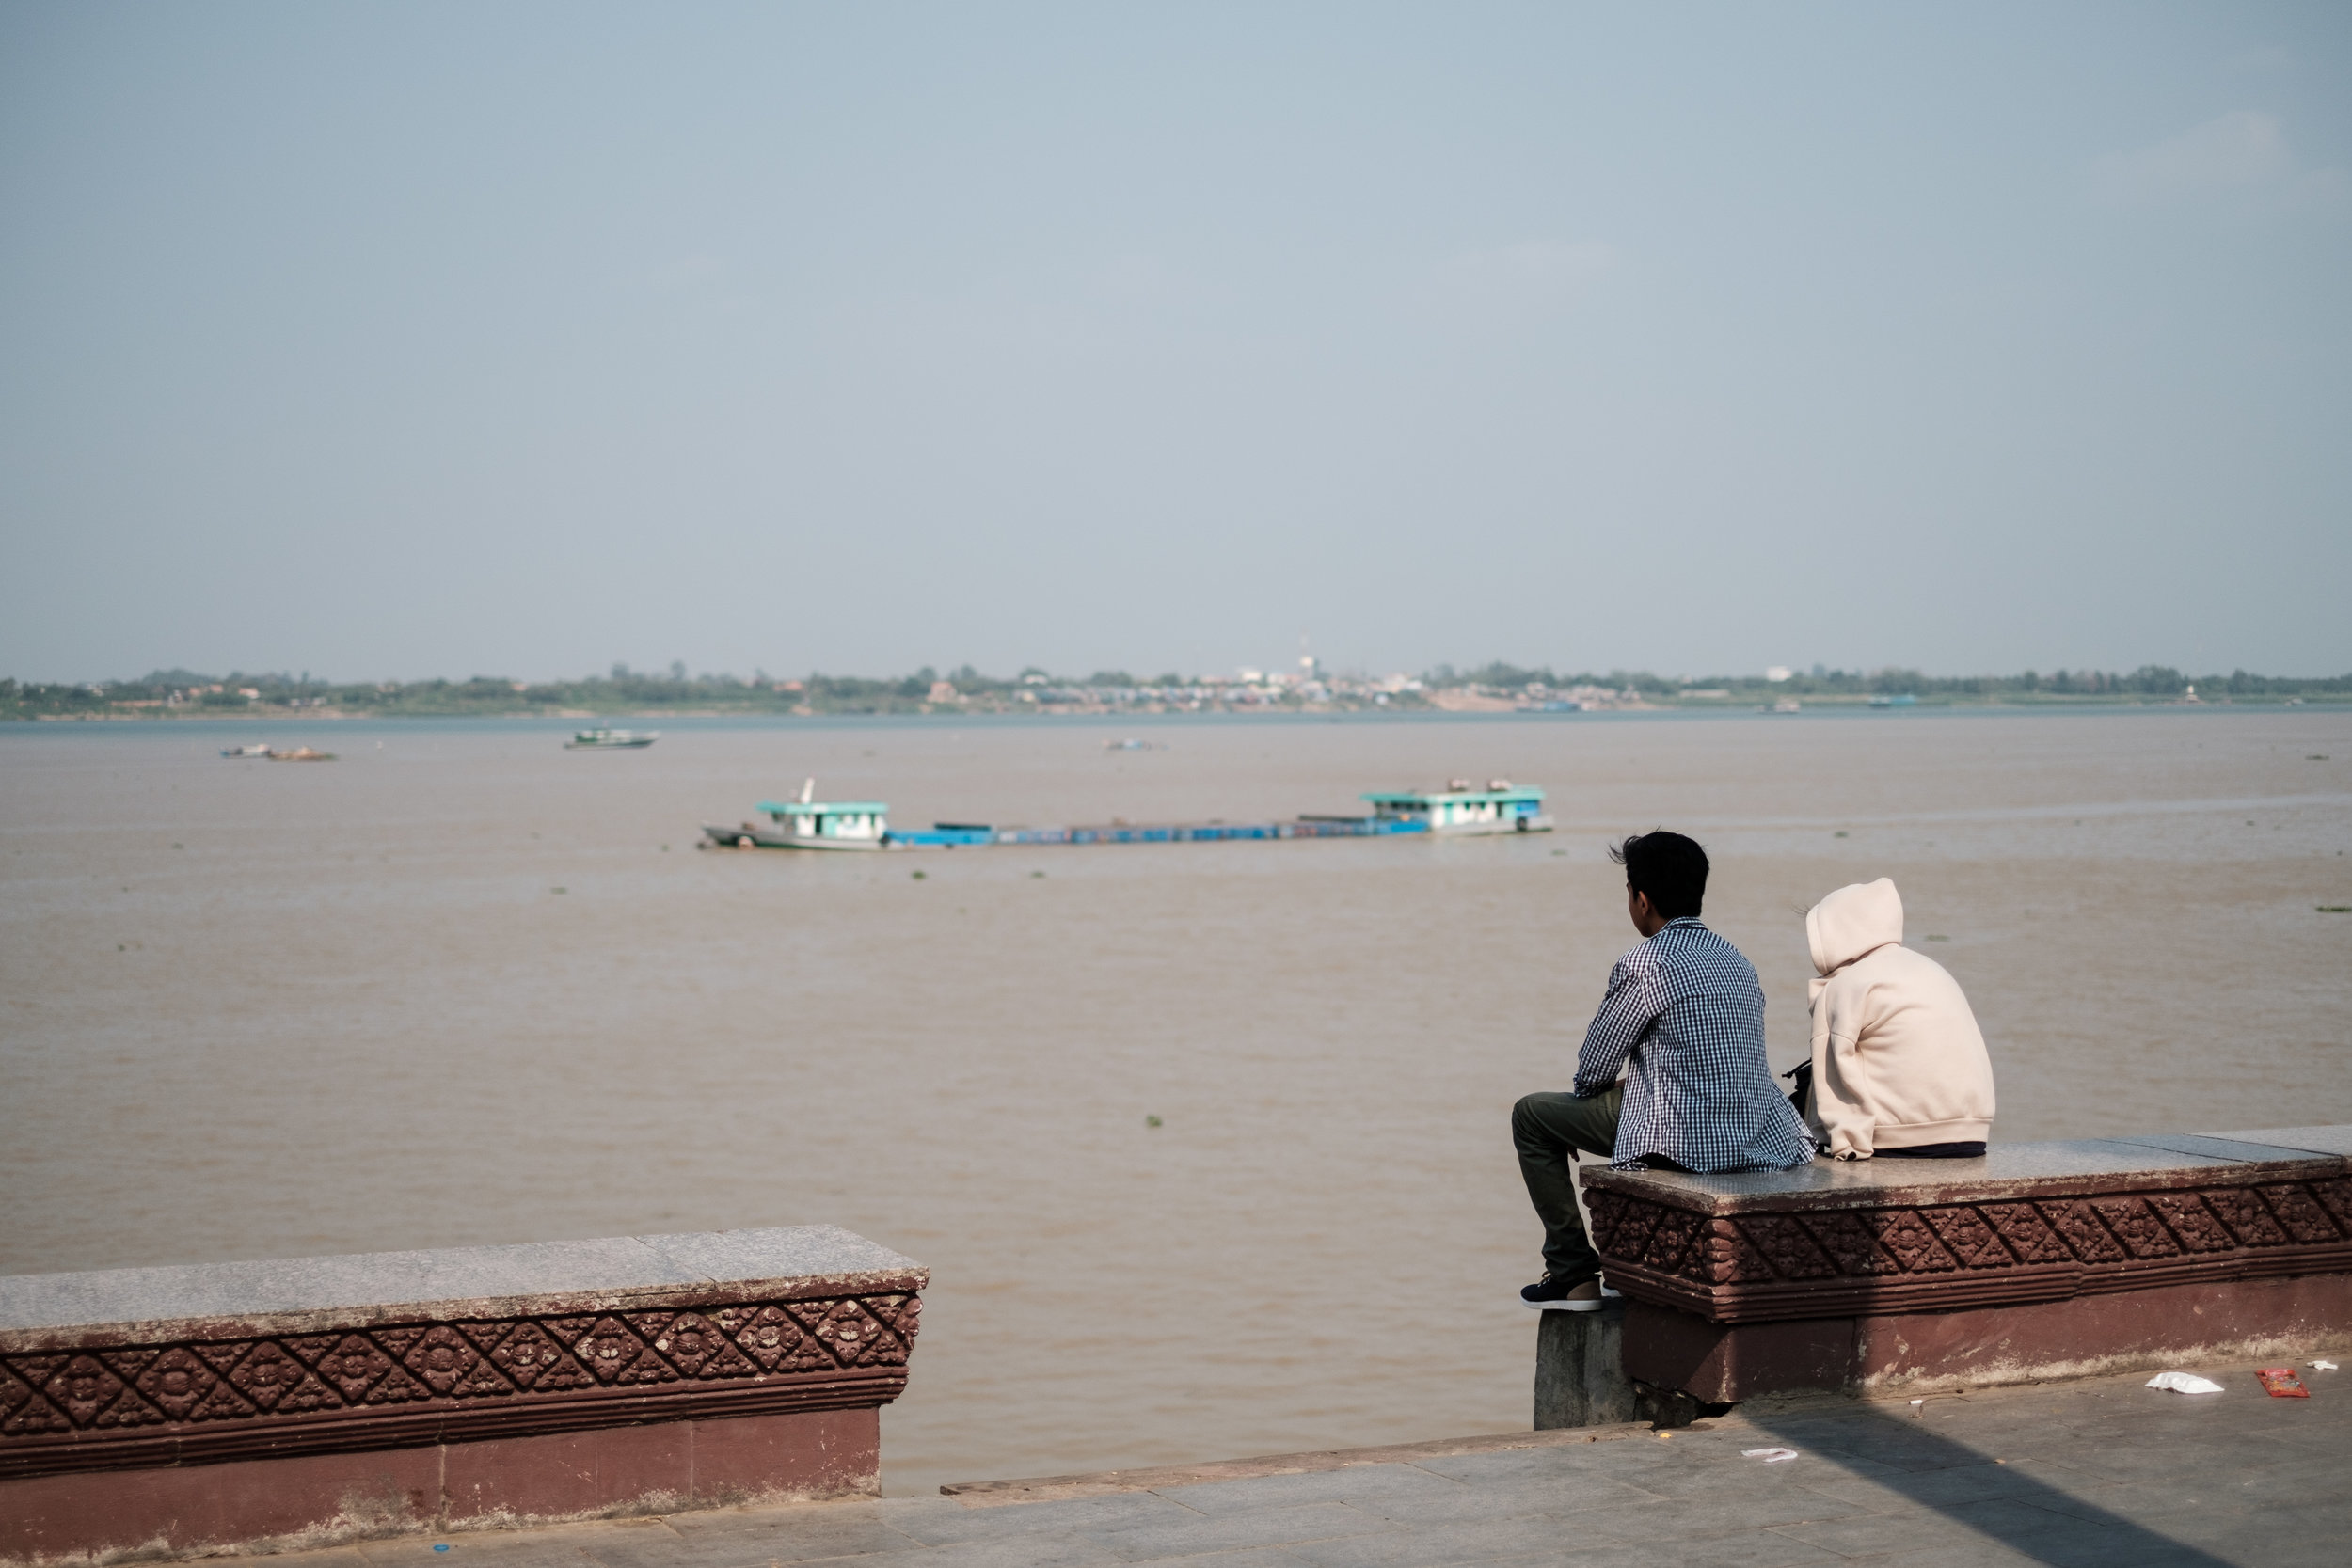 Two young people a gazing out at the Mekong River in Phnom Penh Cambodia